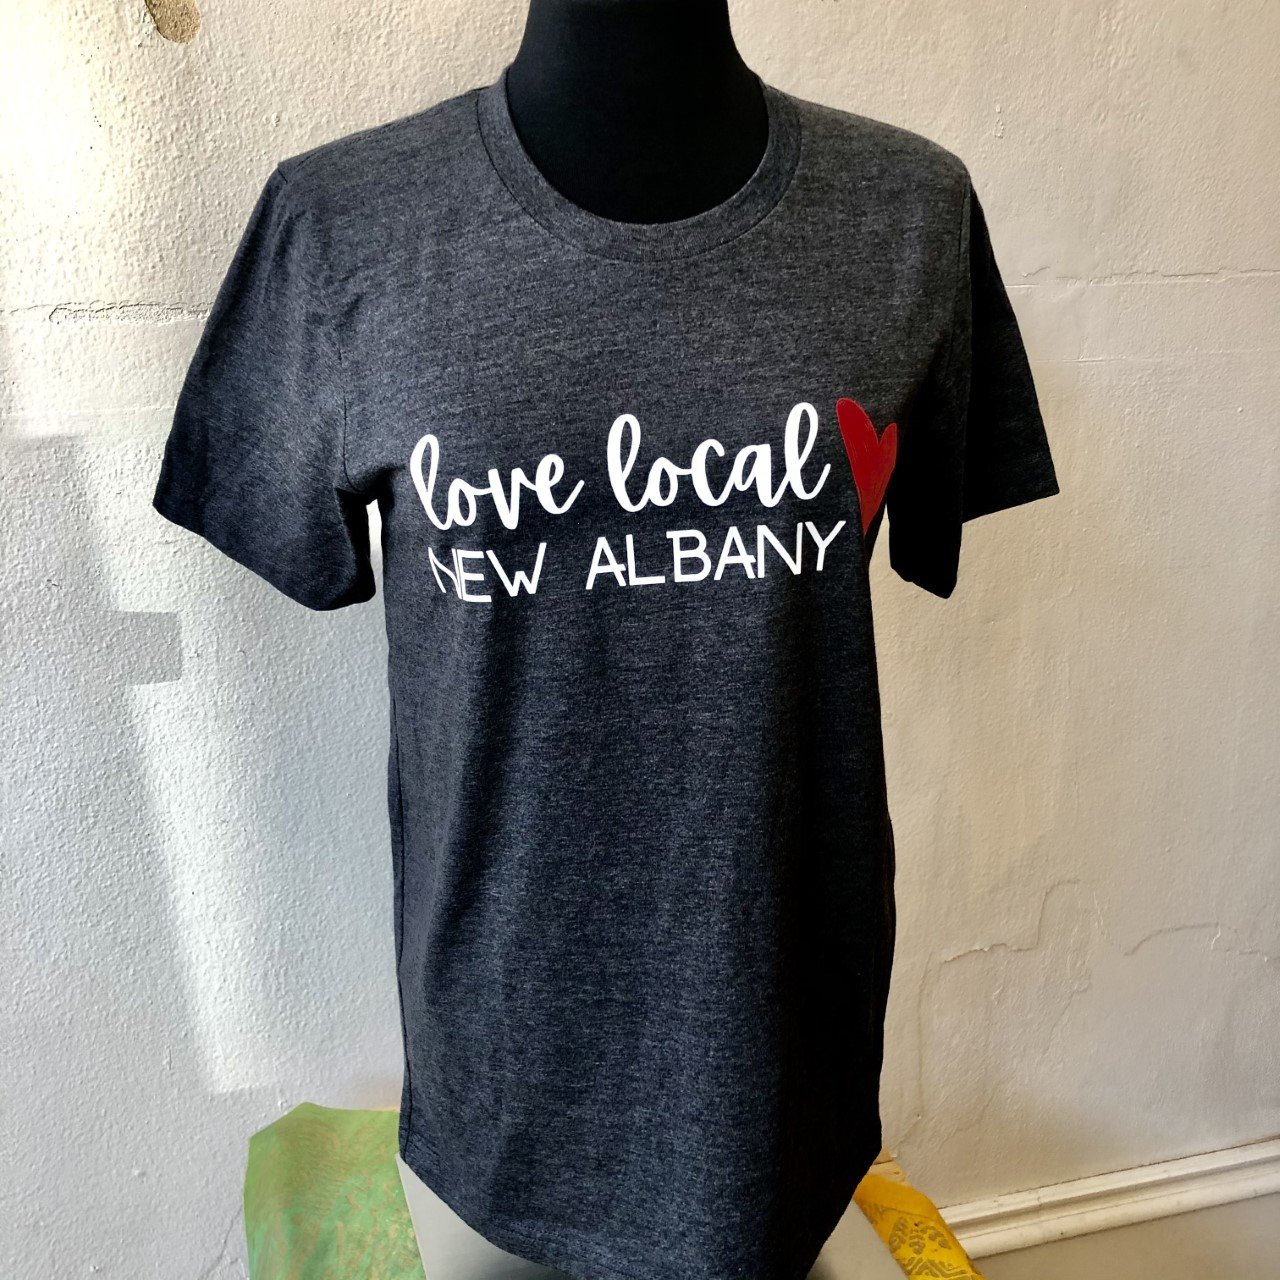 Love Local New Albany S/S T-Shirt - Charcoal